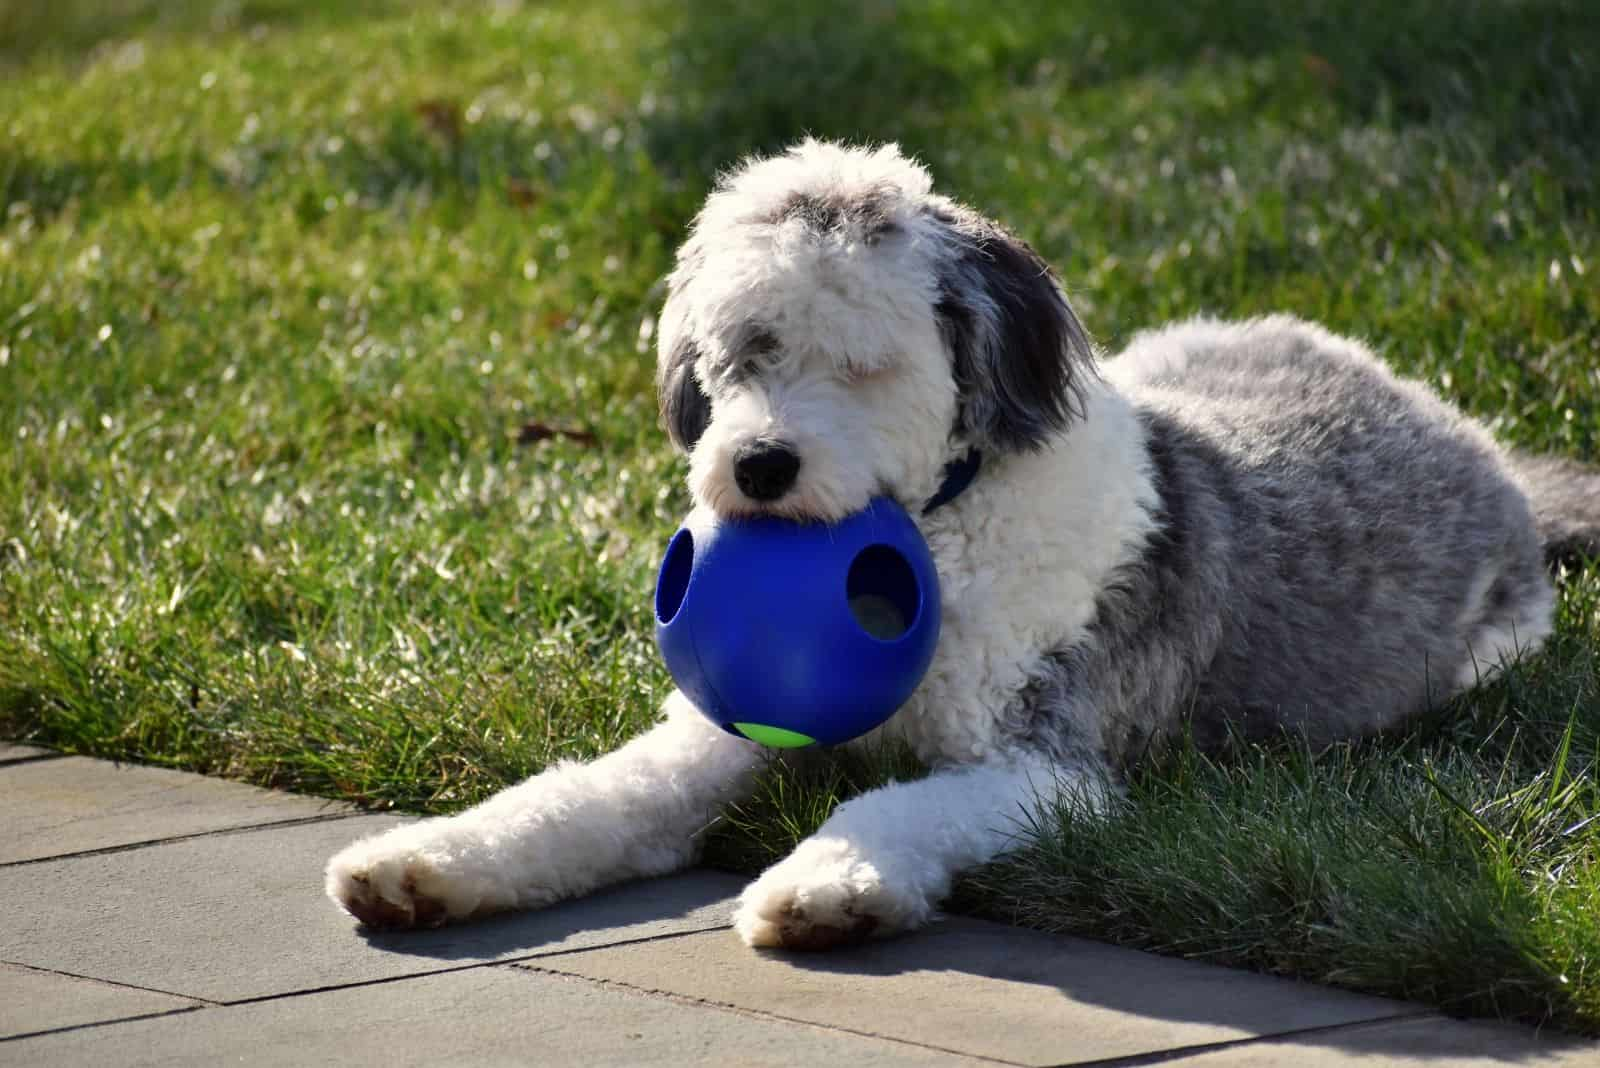 bernedoodle playing with ball outdoors near the road